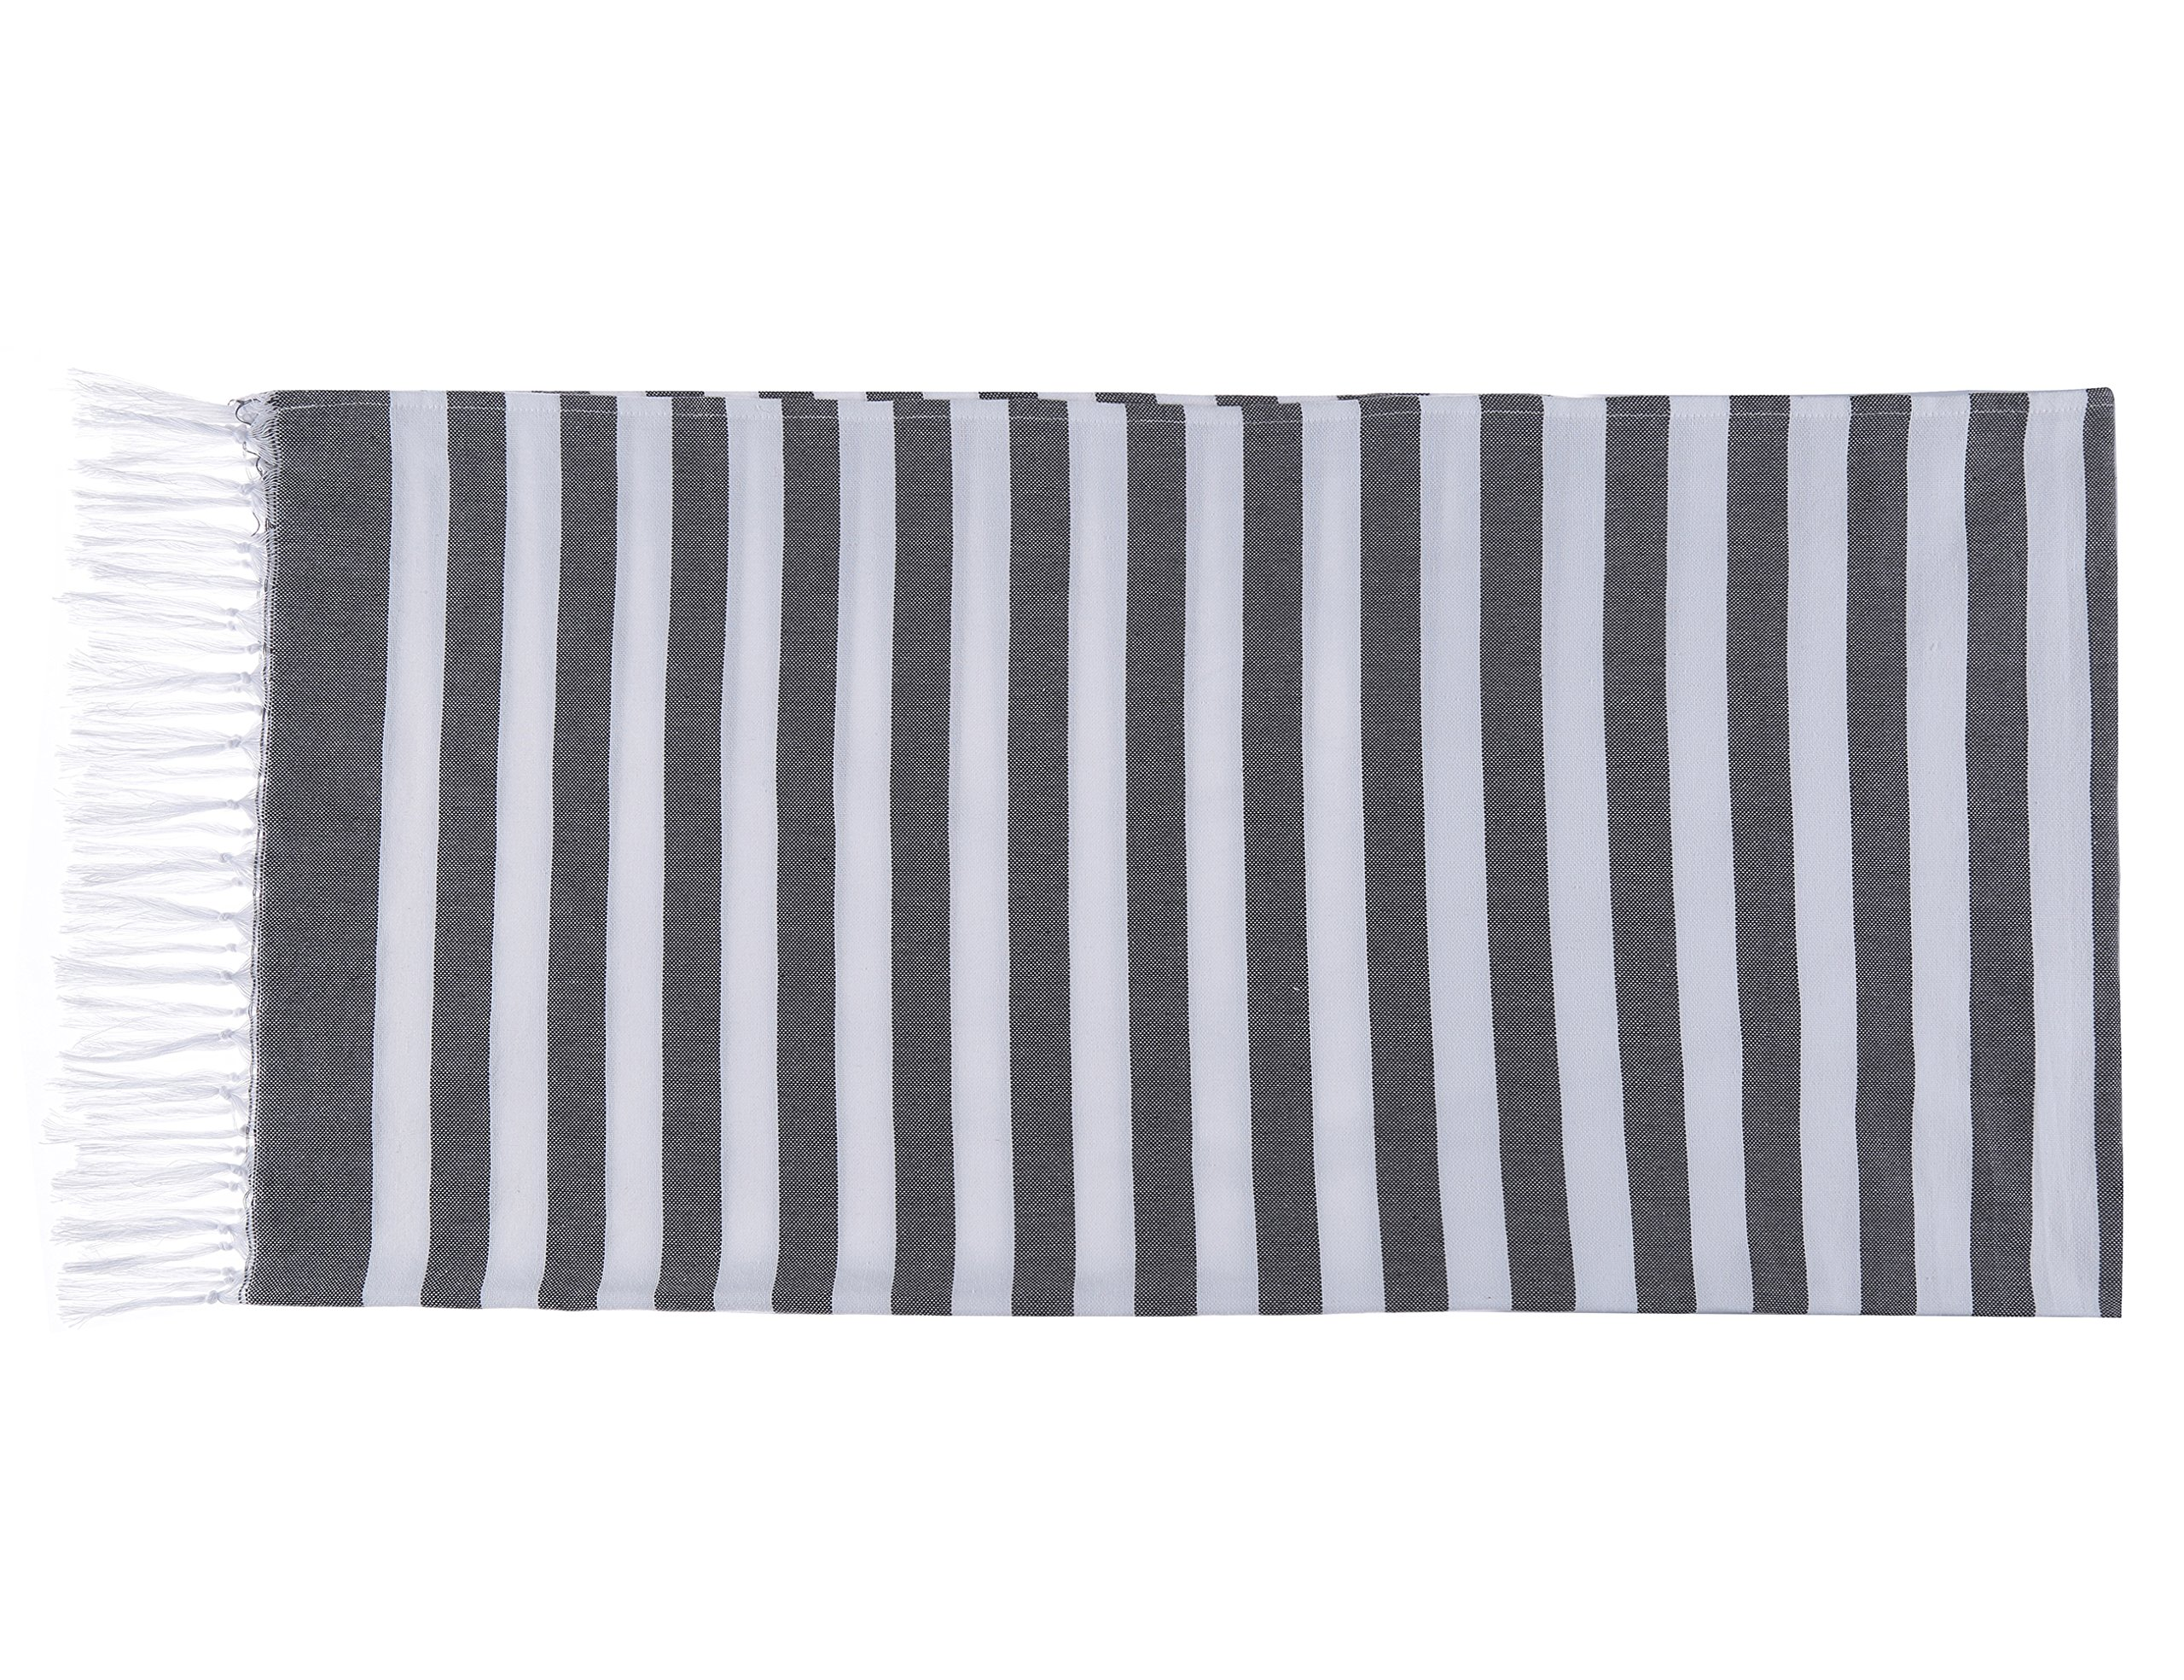 Chama 100% Cotton Extra Soft Striped Peshtemal Fouta Turkish Beach Towels Wrap Bath Towel Oversized Blanket for Baby Home Family Traveling Pool Scarf Towel Absorbency (Black&white stripes) by Chama (Image #2)